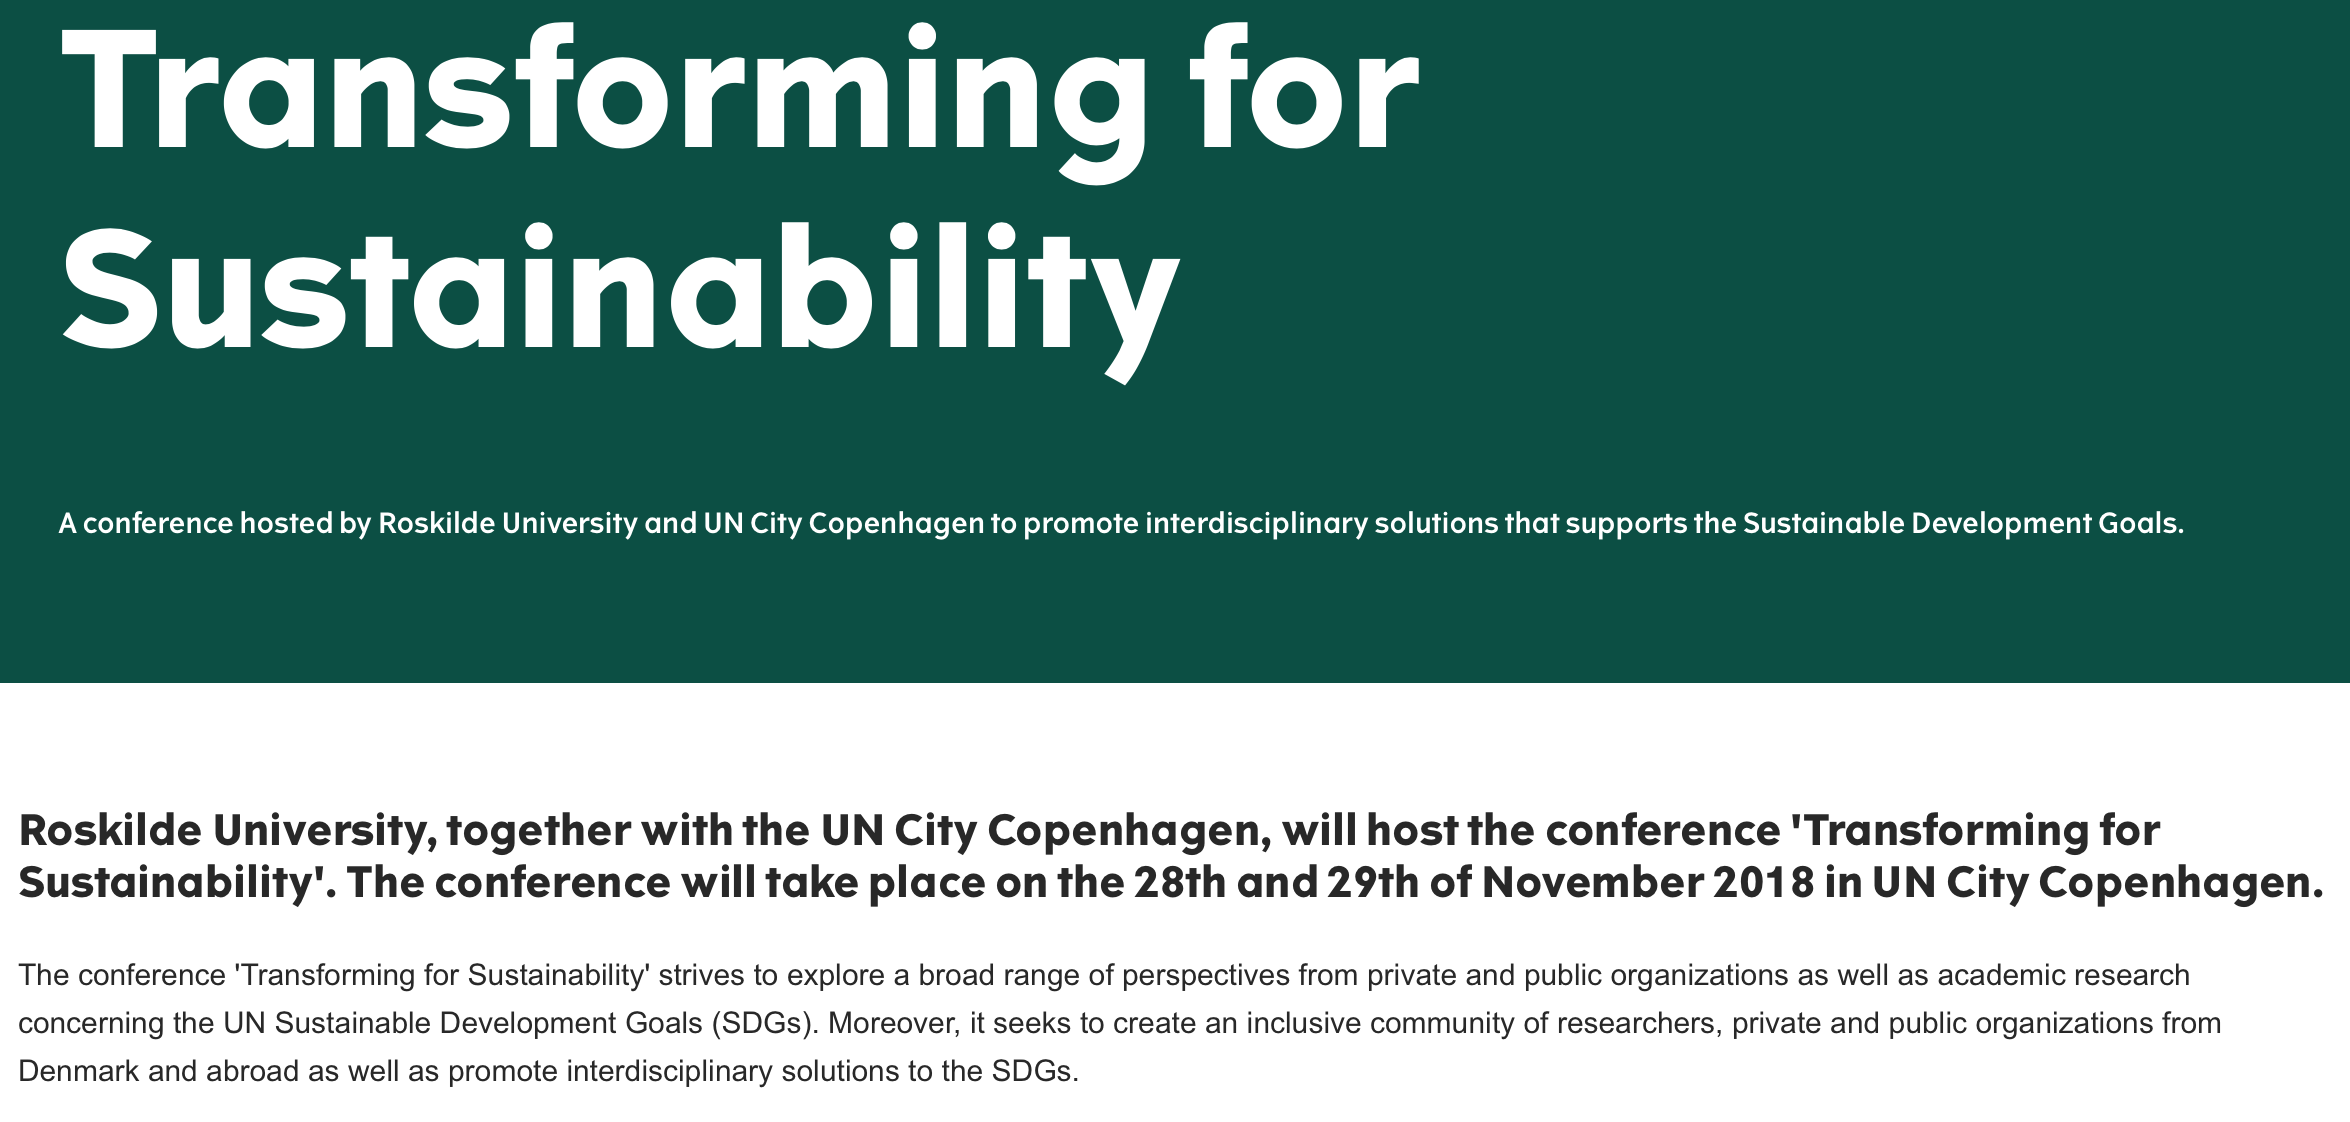 Transforming for Sustainability, A conference hosted by Roskilde University and UN City Copenhagen @ Roskilde University | Roskilde | Denmark